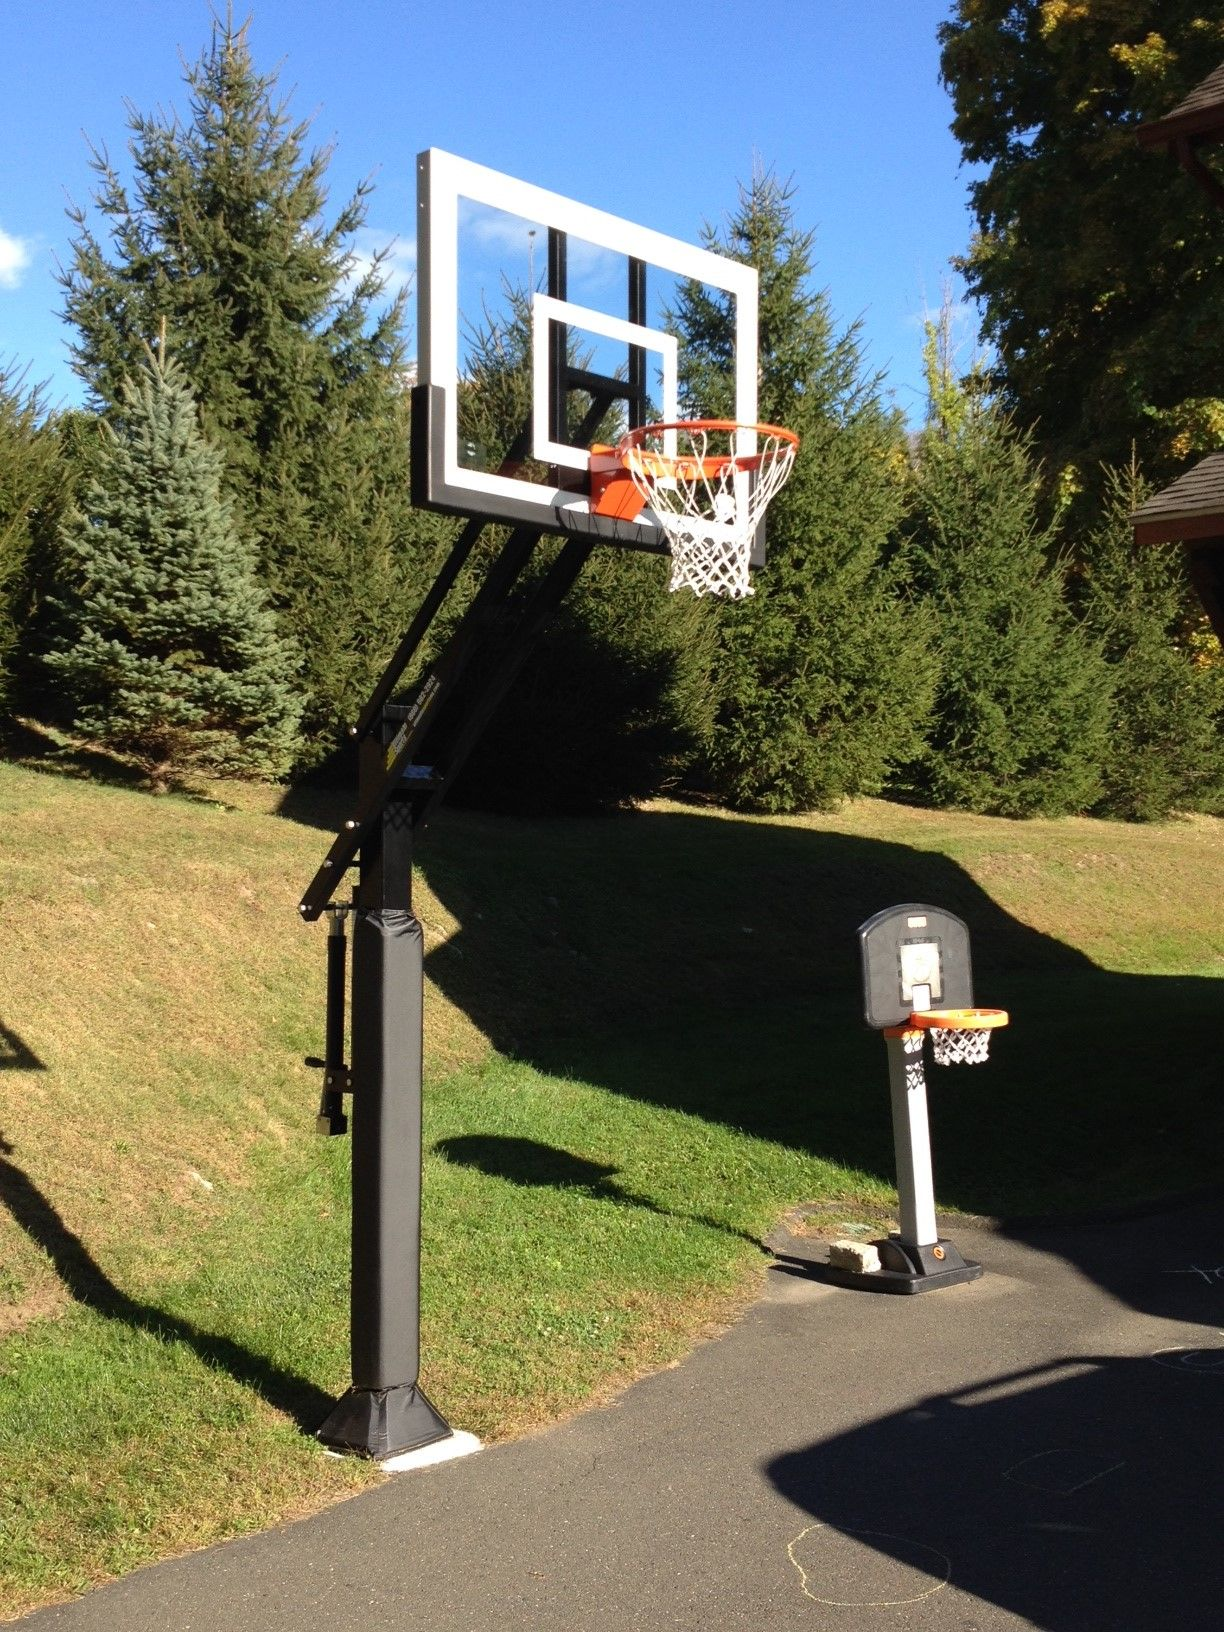 This Fully Extended Pro Dunk Silver Basketball System Is Exactly What The Little Goal That Could